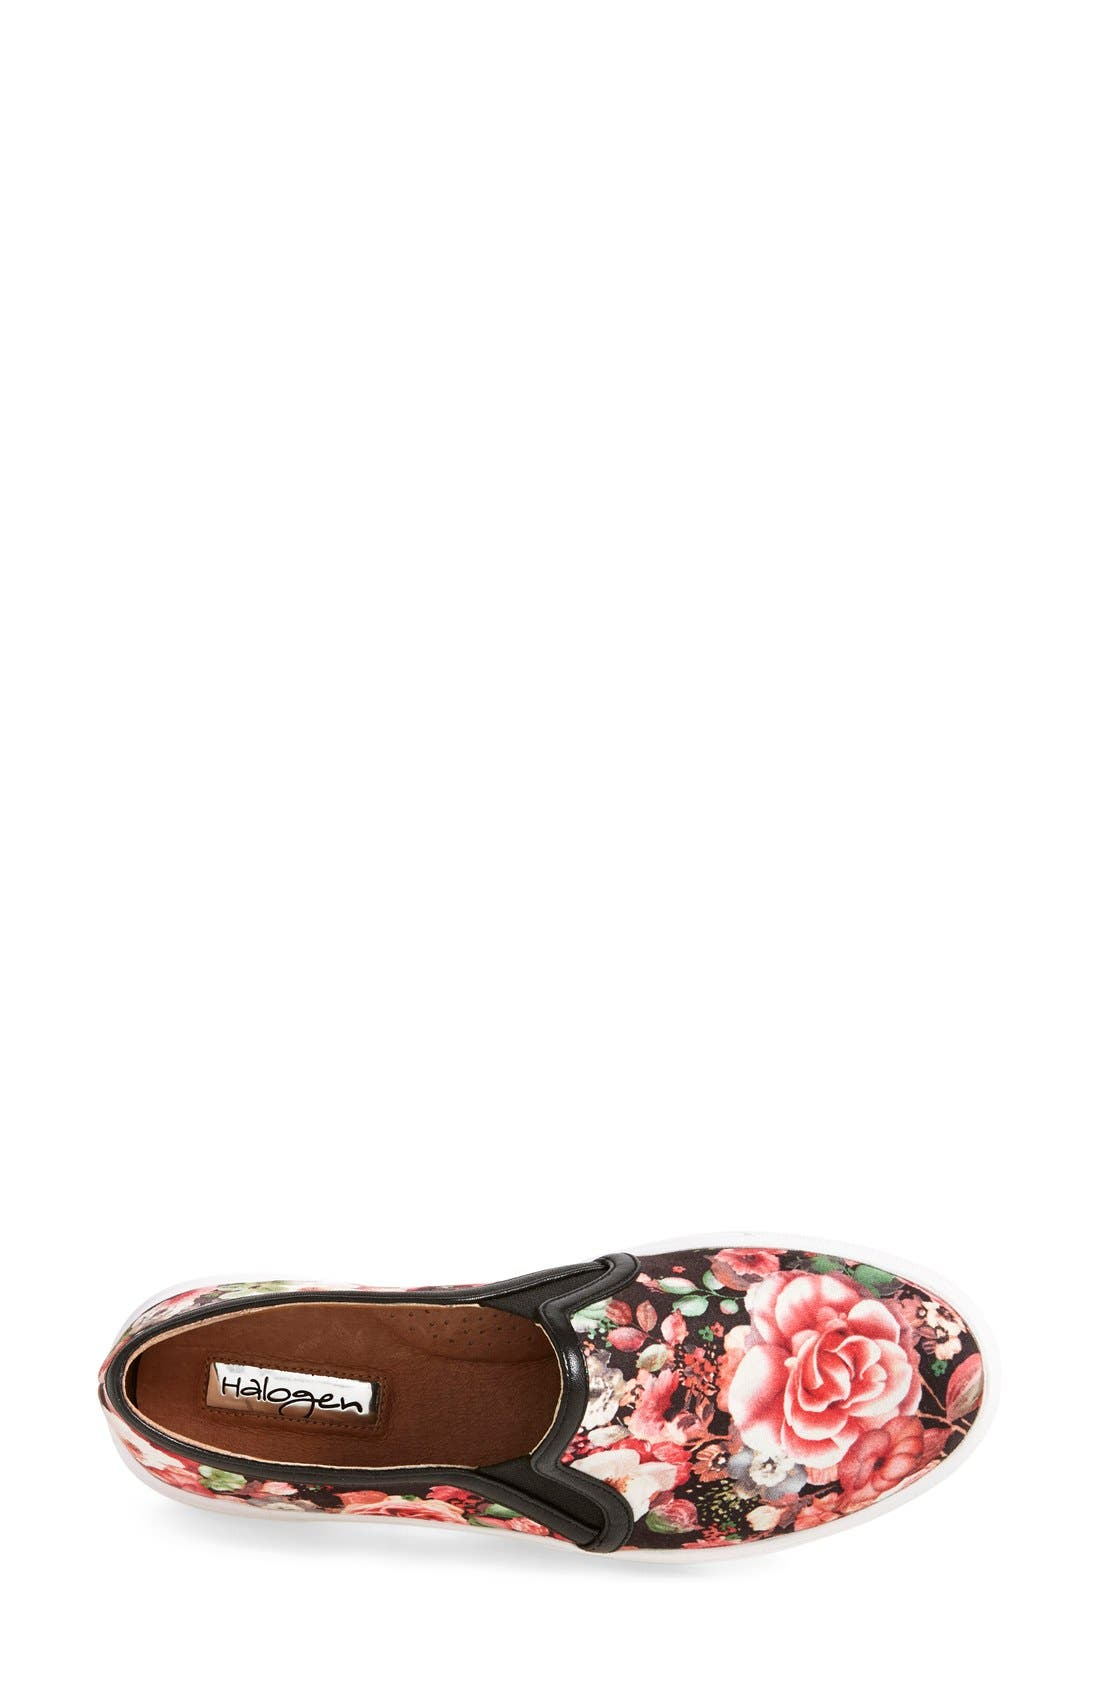 'Turner' Slip-On Sneaker,                             Alternate thumbnail 3, color,                             Rose Floral